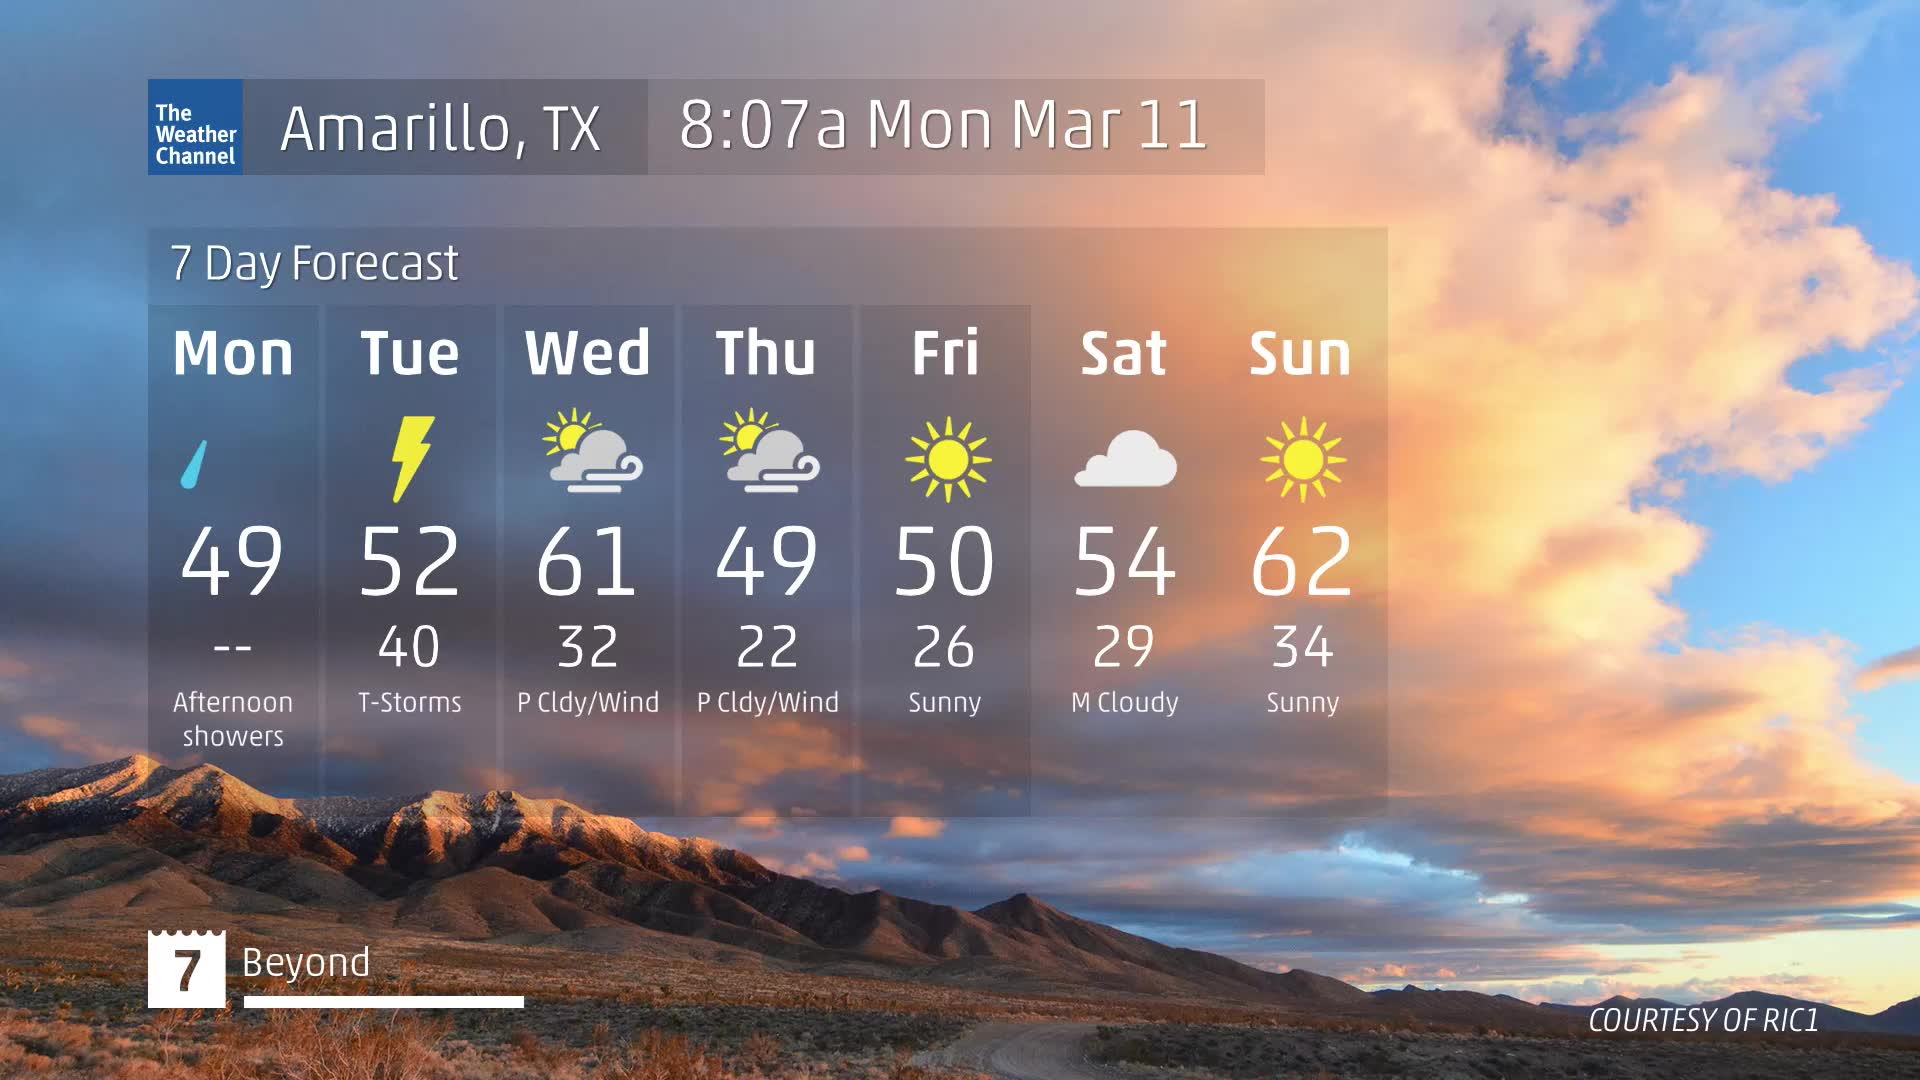 Fitchburg MA Weather Forecast And Conditions The - 10 day weather forecast worcester ma